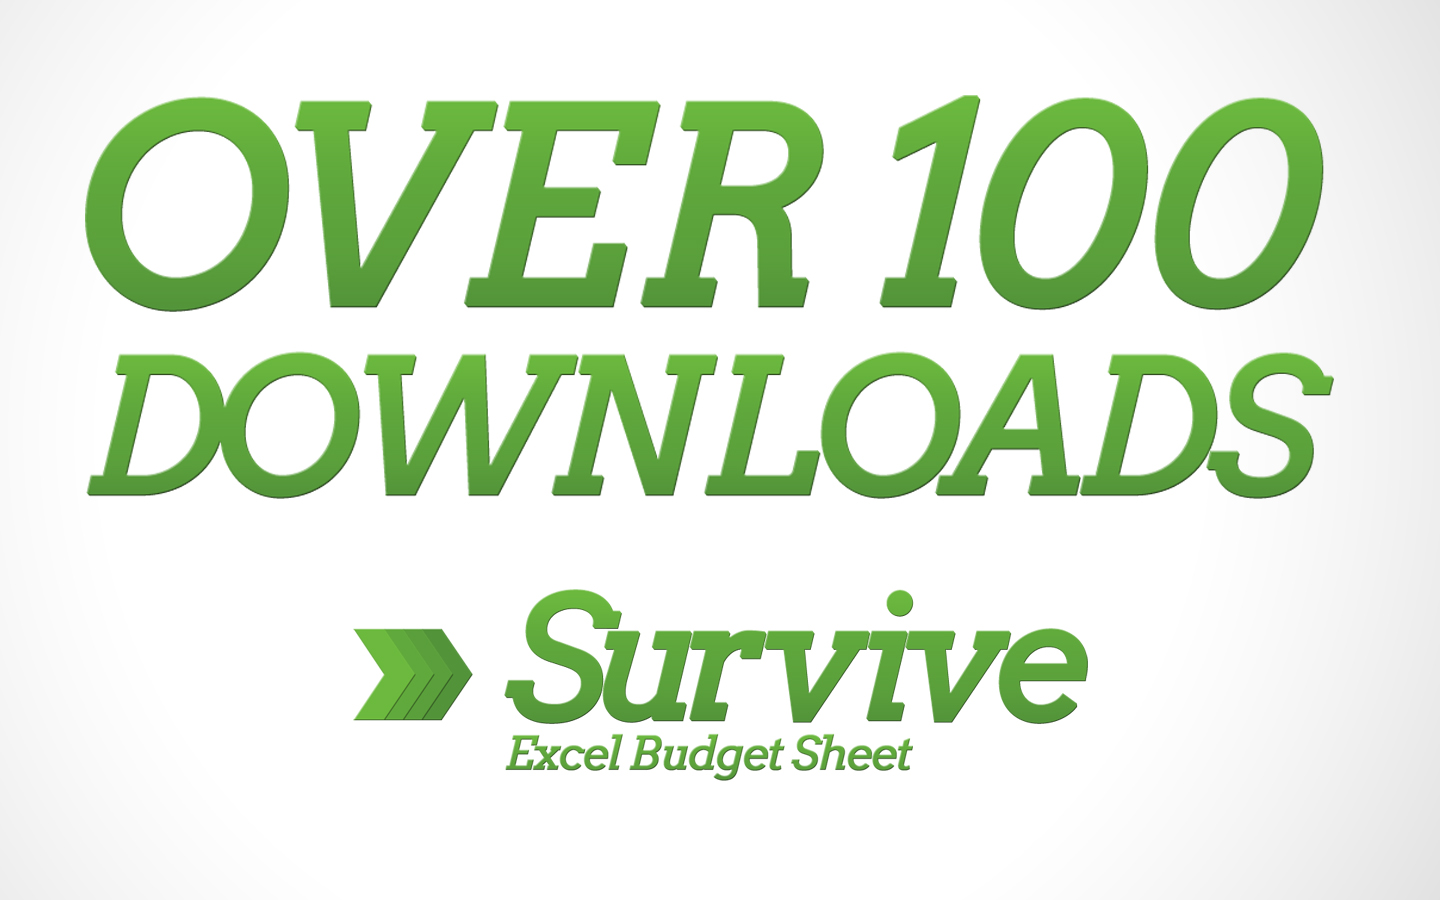 Over 100 Downloads for Survive: Excel Budget Sheet